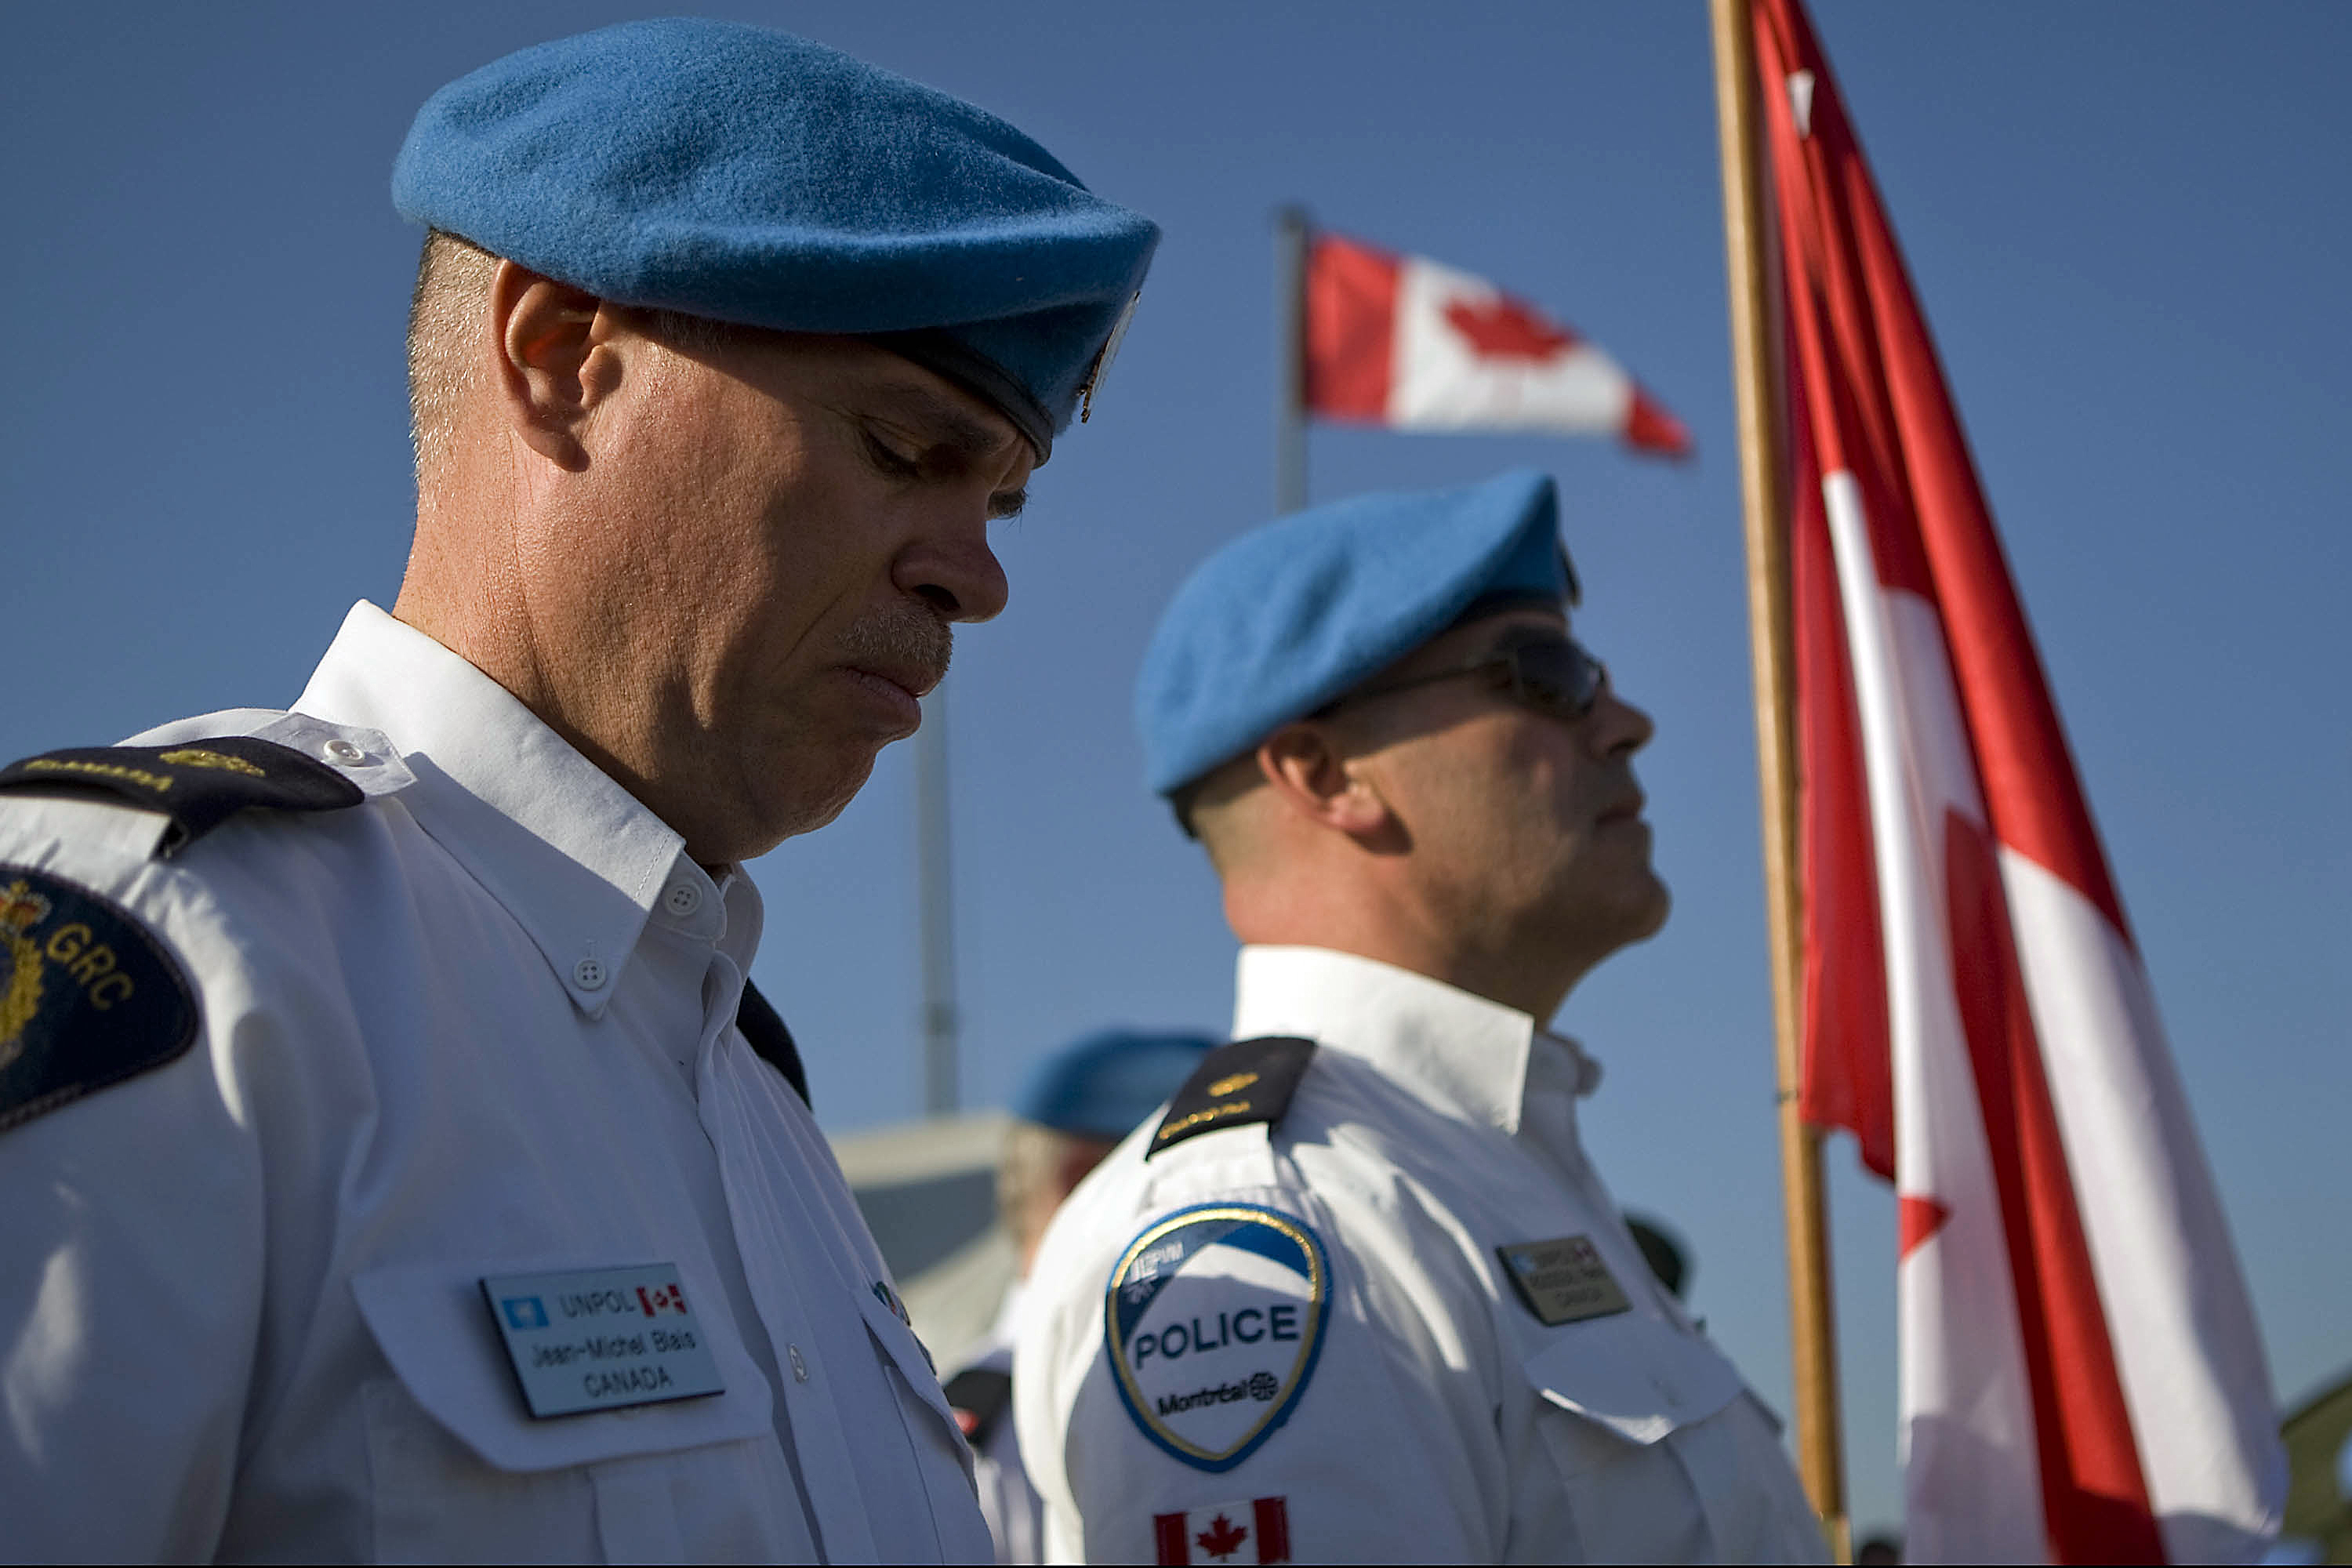 canadian peacekeeping Canadian peacekeeping forces, which once numbered in the thousands, have  dwindled to dozens in recent years, prompting the liberal.